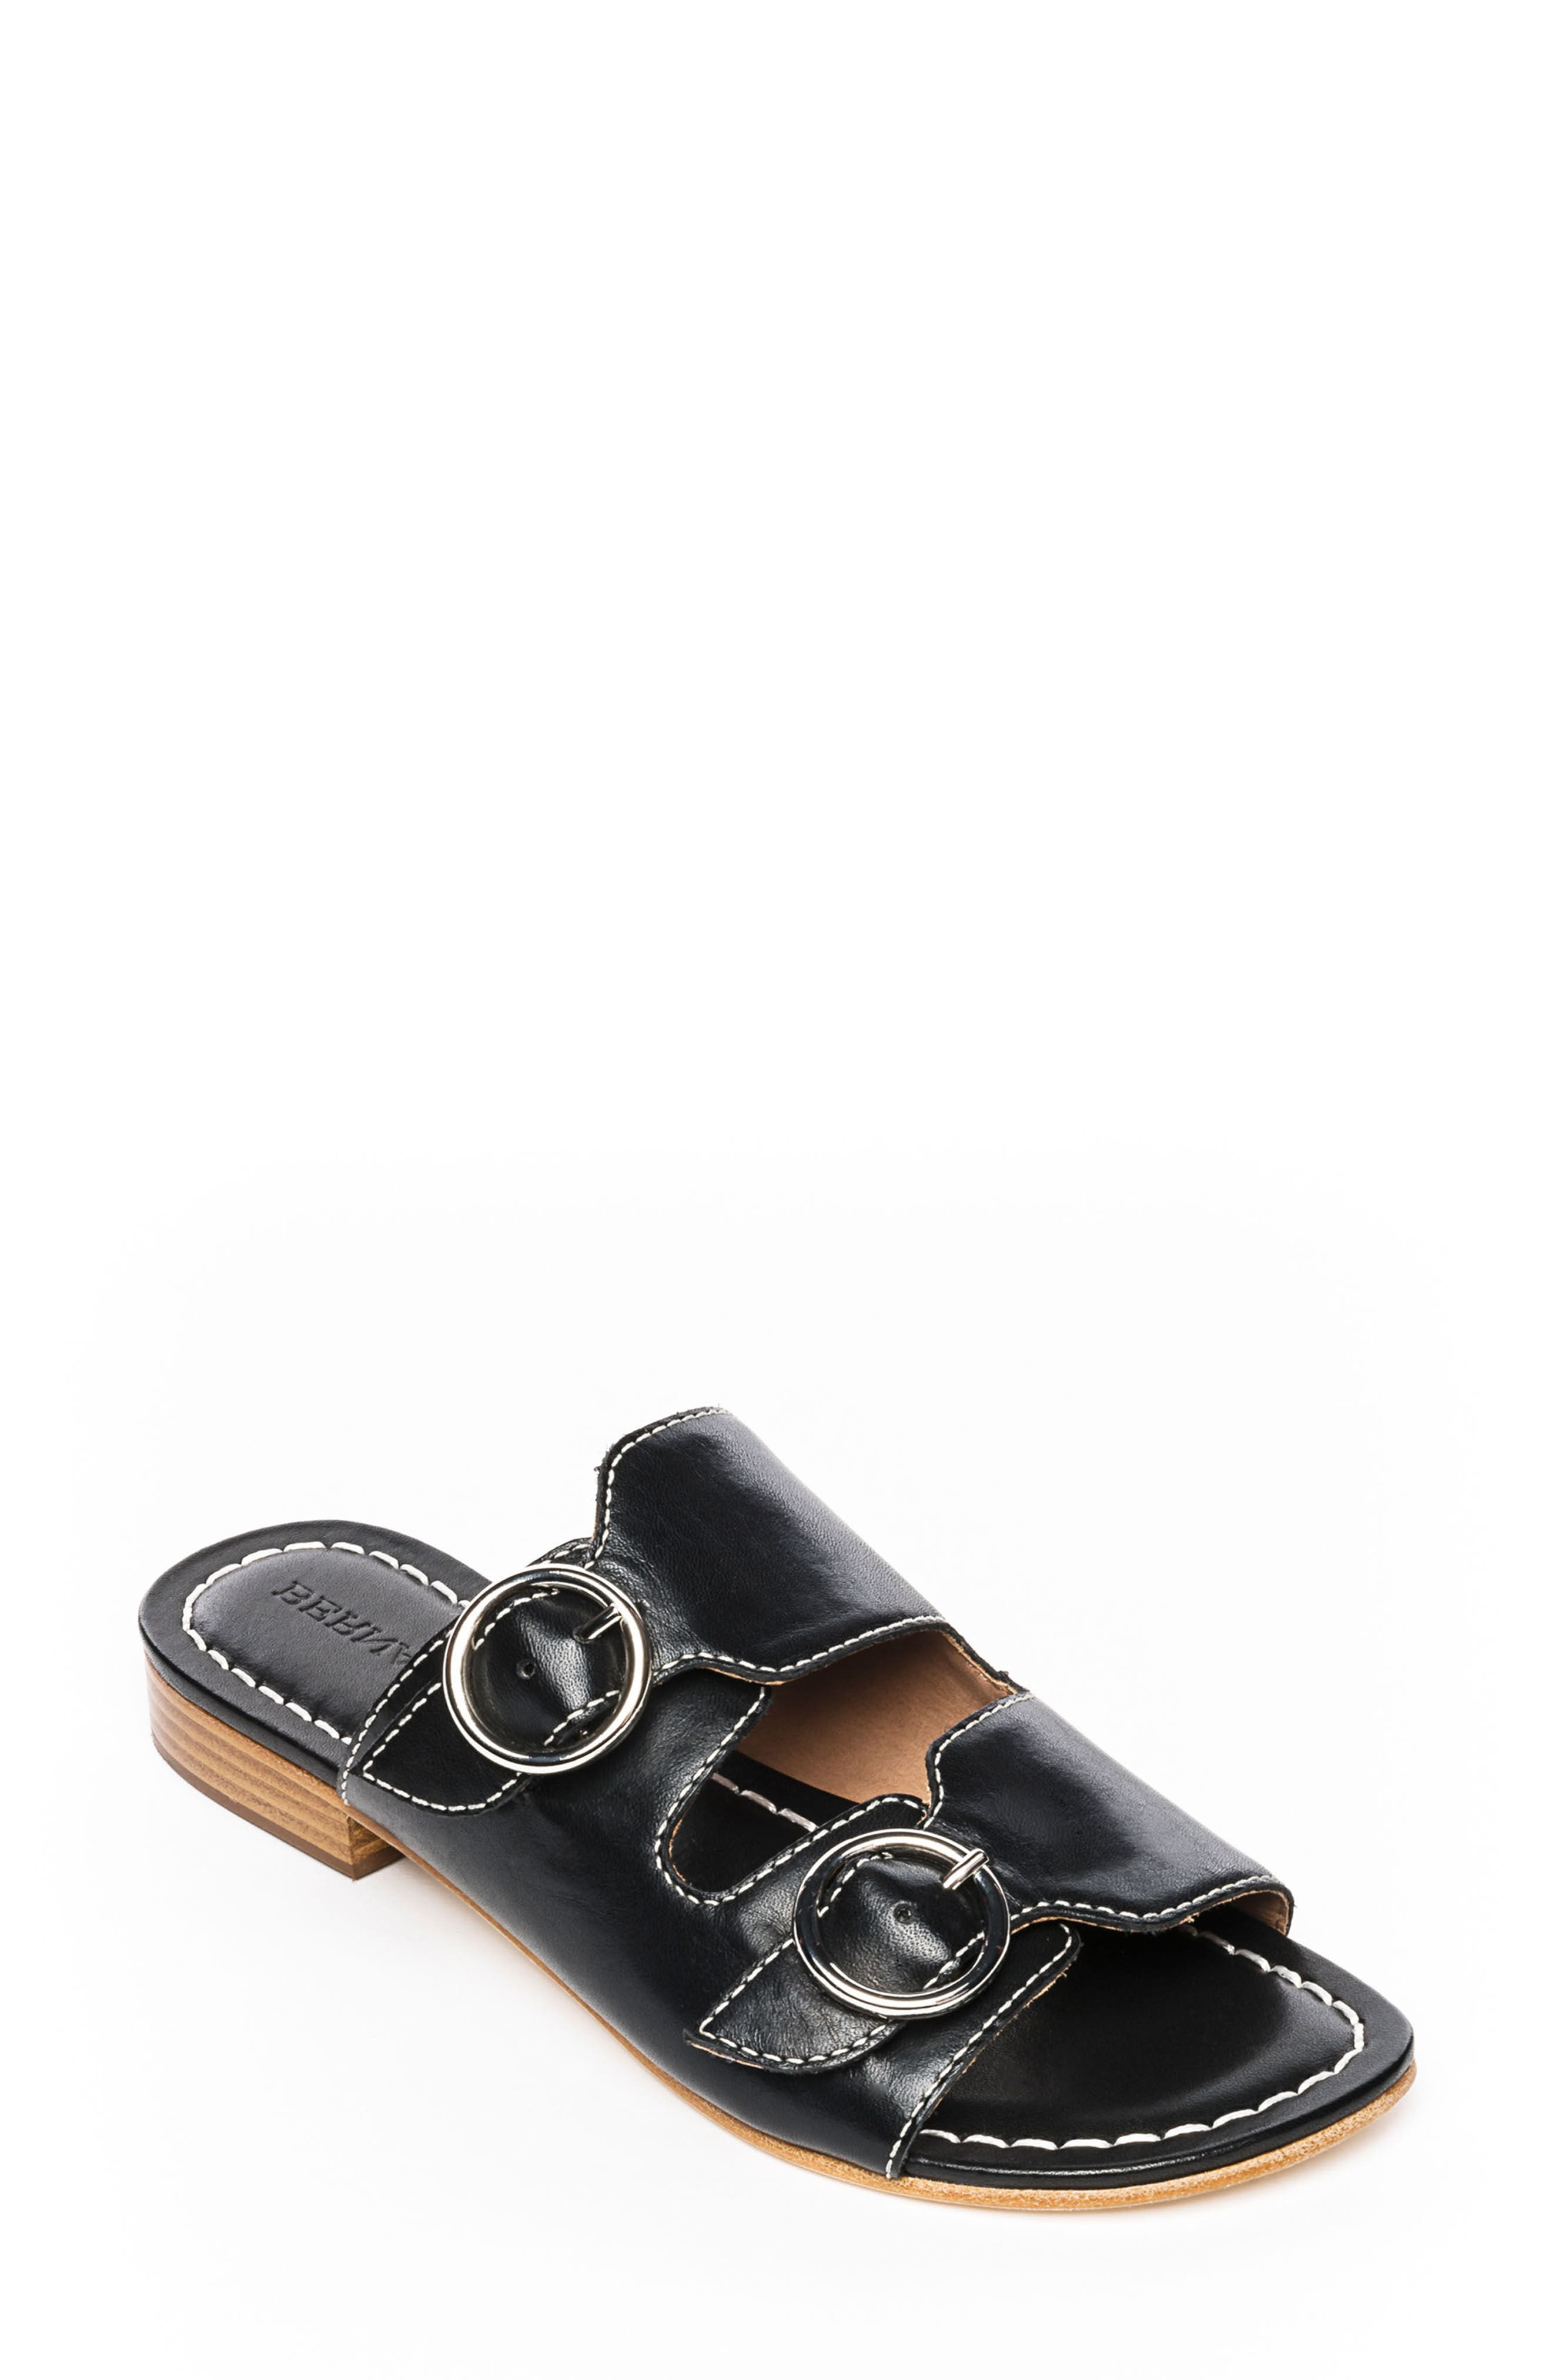 Bernardo Tobi Slide Sandal,                             Main thumbnail 1, color,                             001